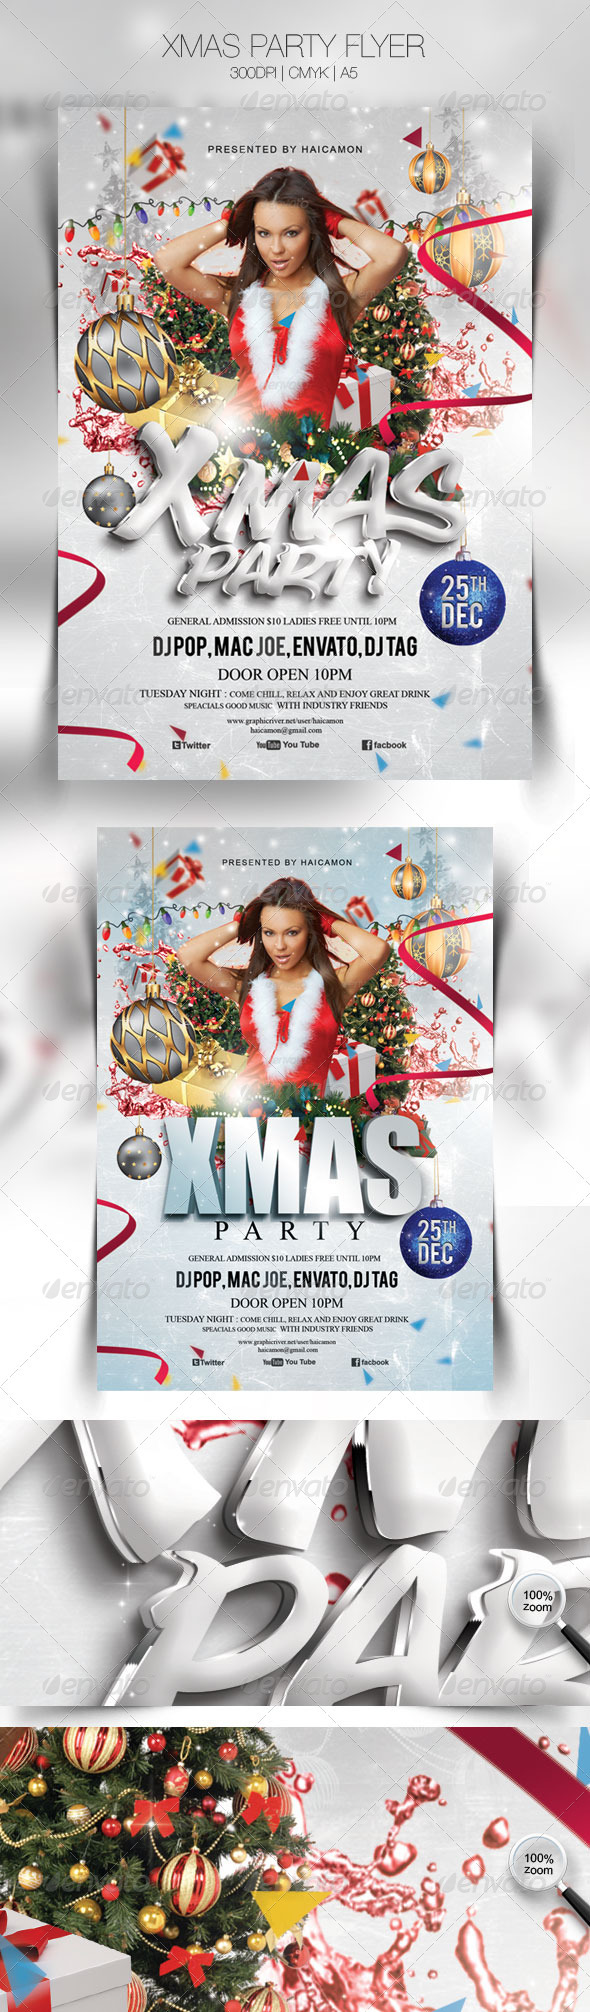 GraphicRiver Xmas Party Flyer Template 3495690